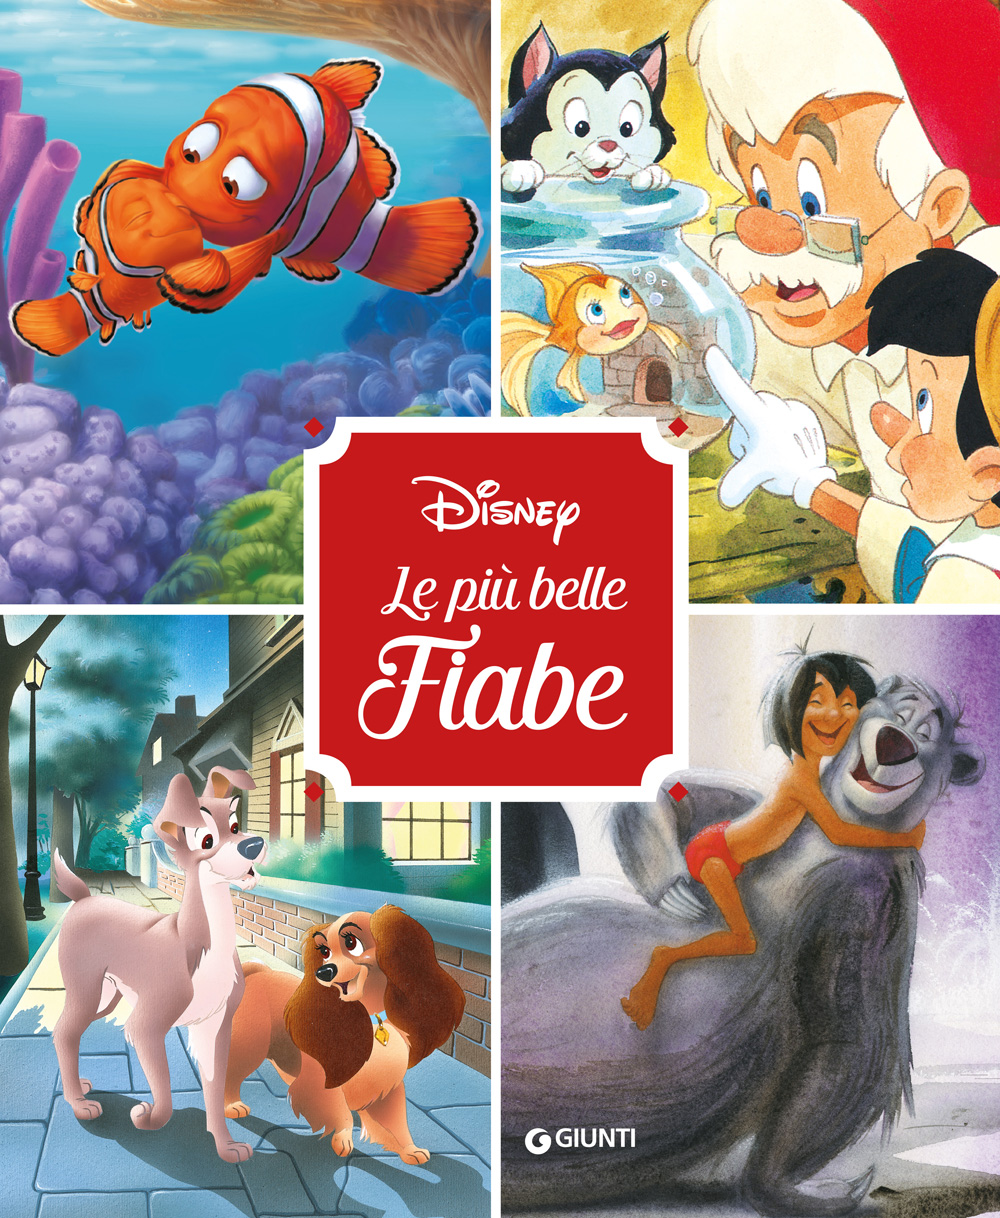 Le più belle fiabe. Disney Fiabe Collection